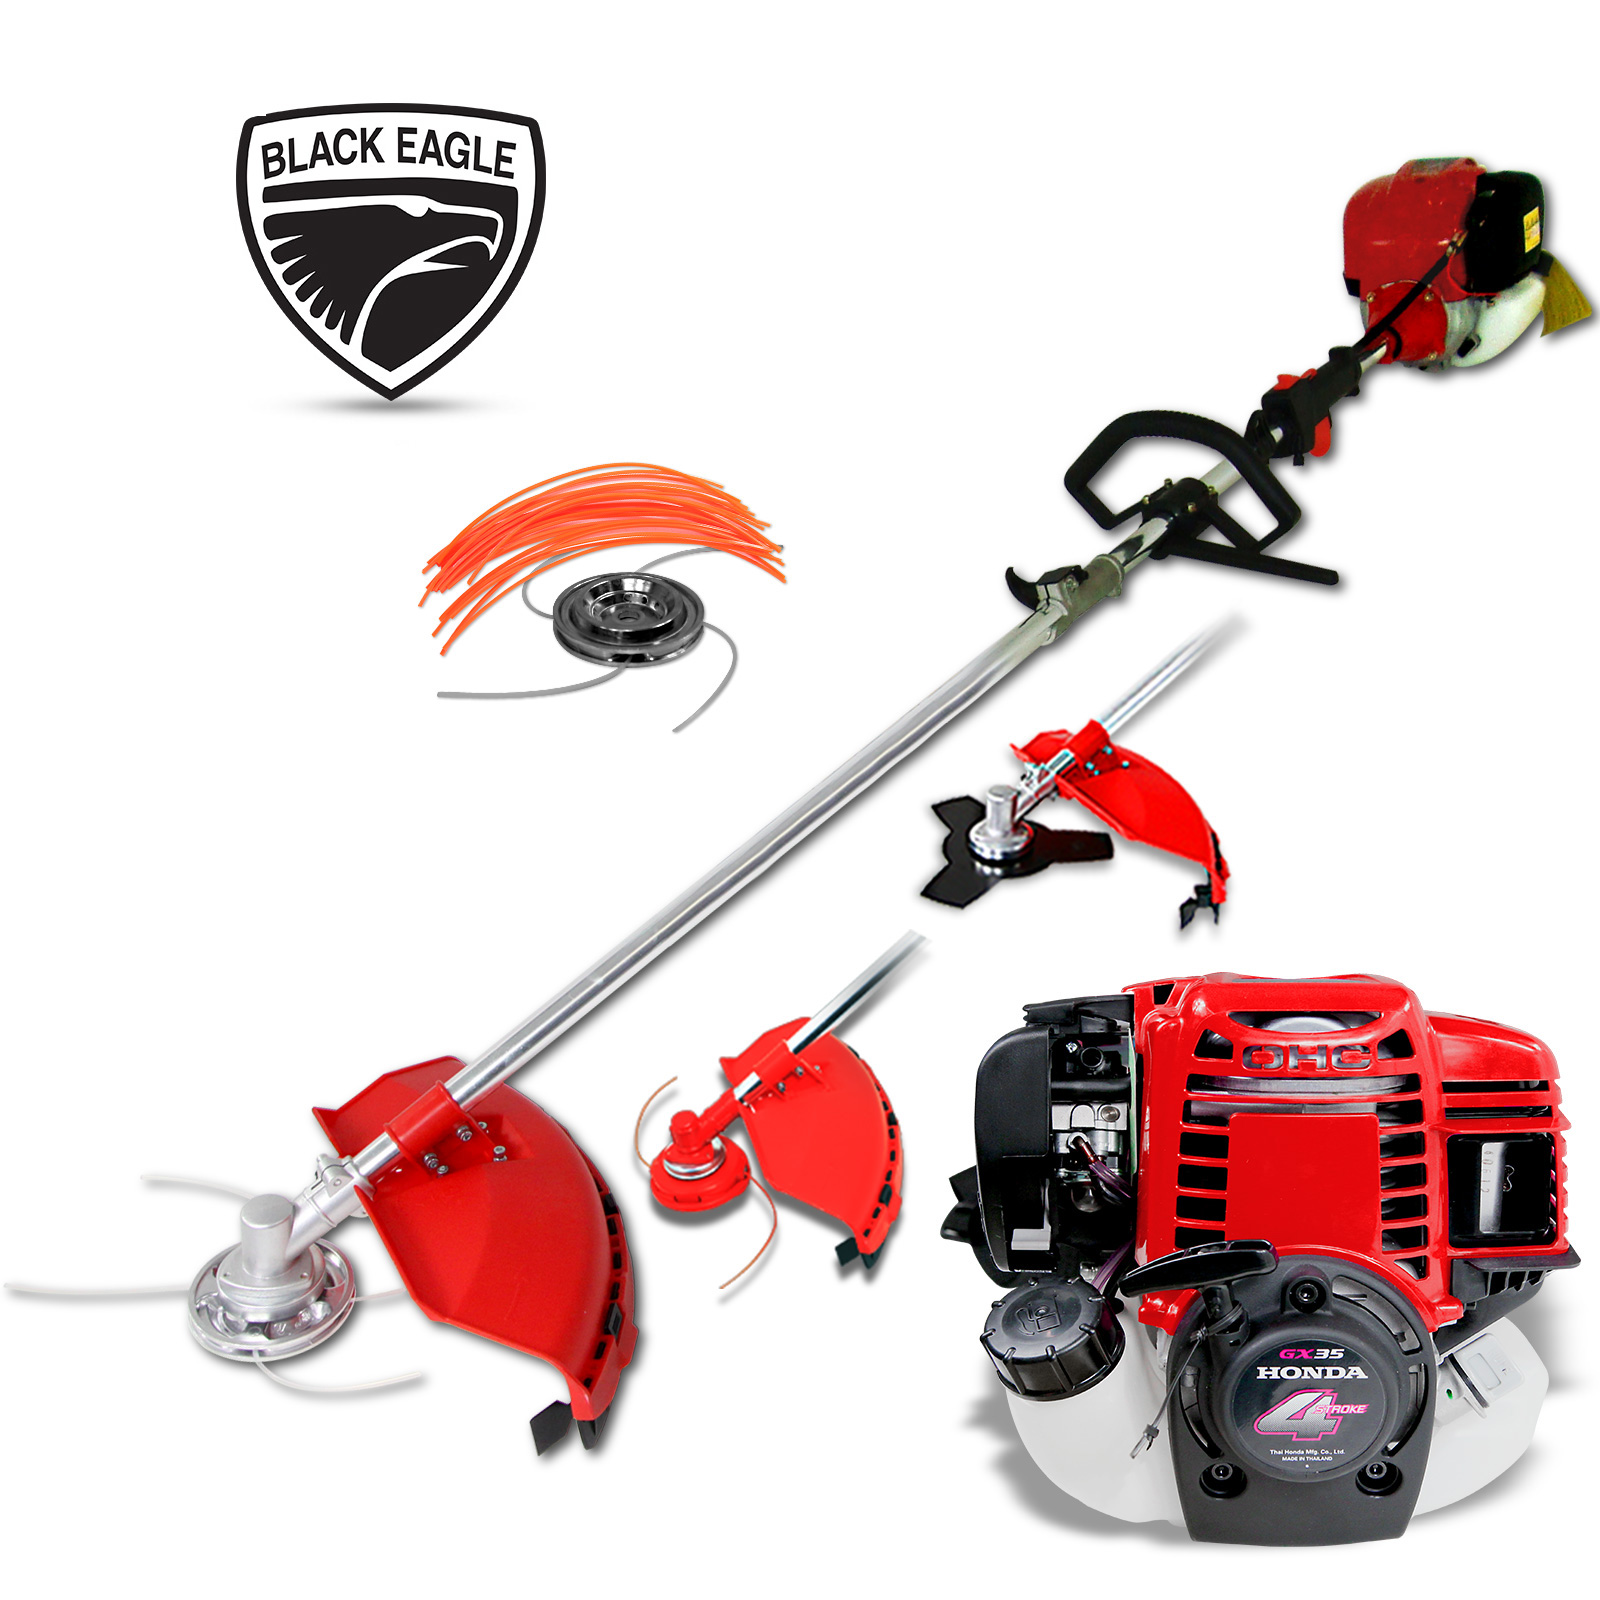 Black Eagle Powered by Honda 52cc Pole Chain Saw with Hedge Trimmer